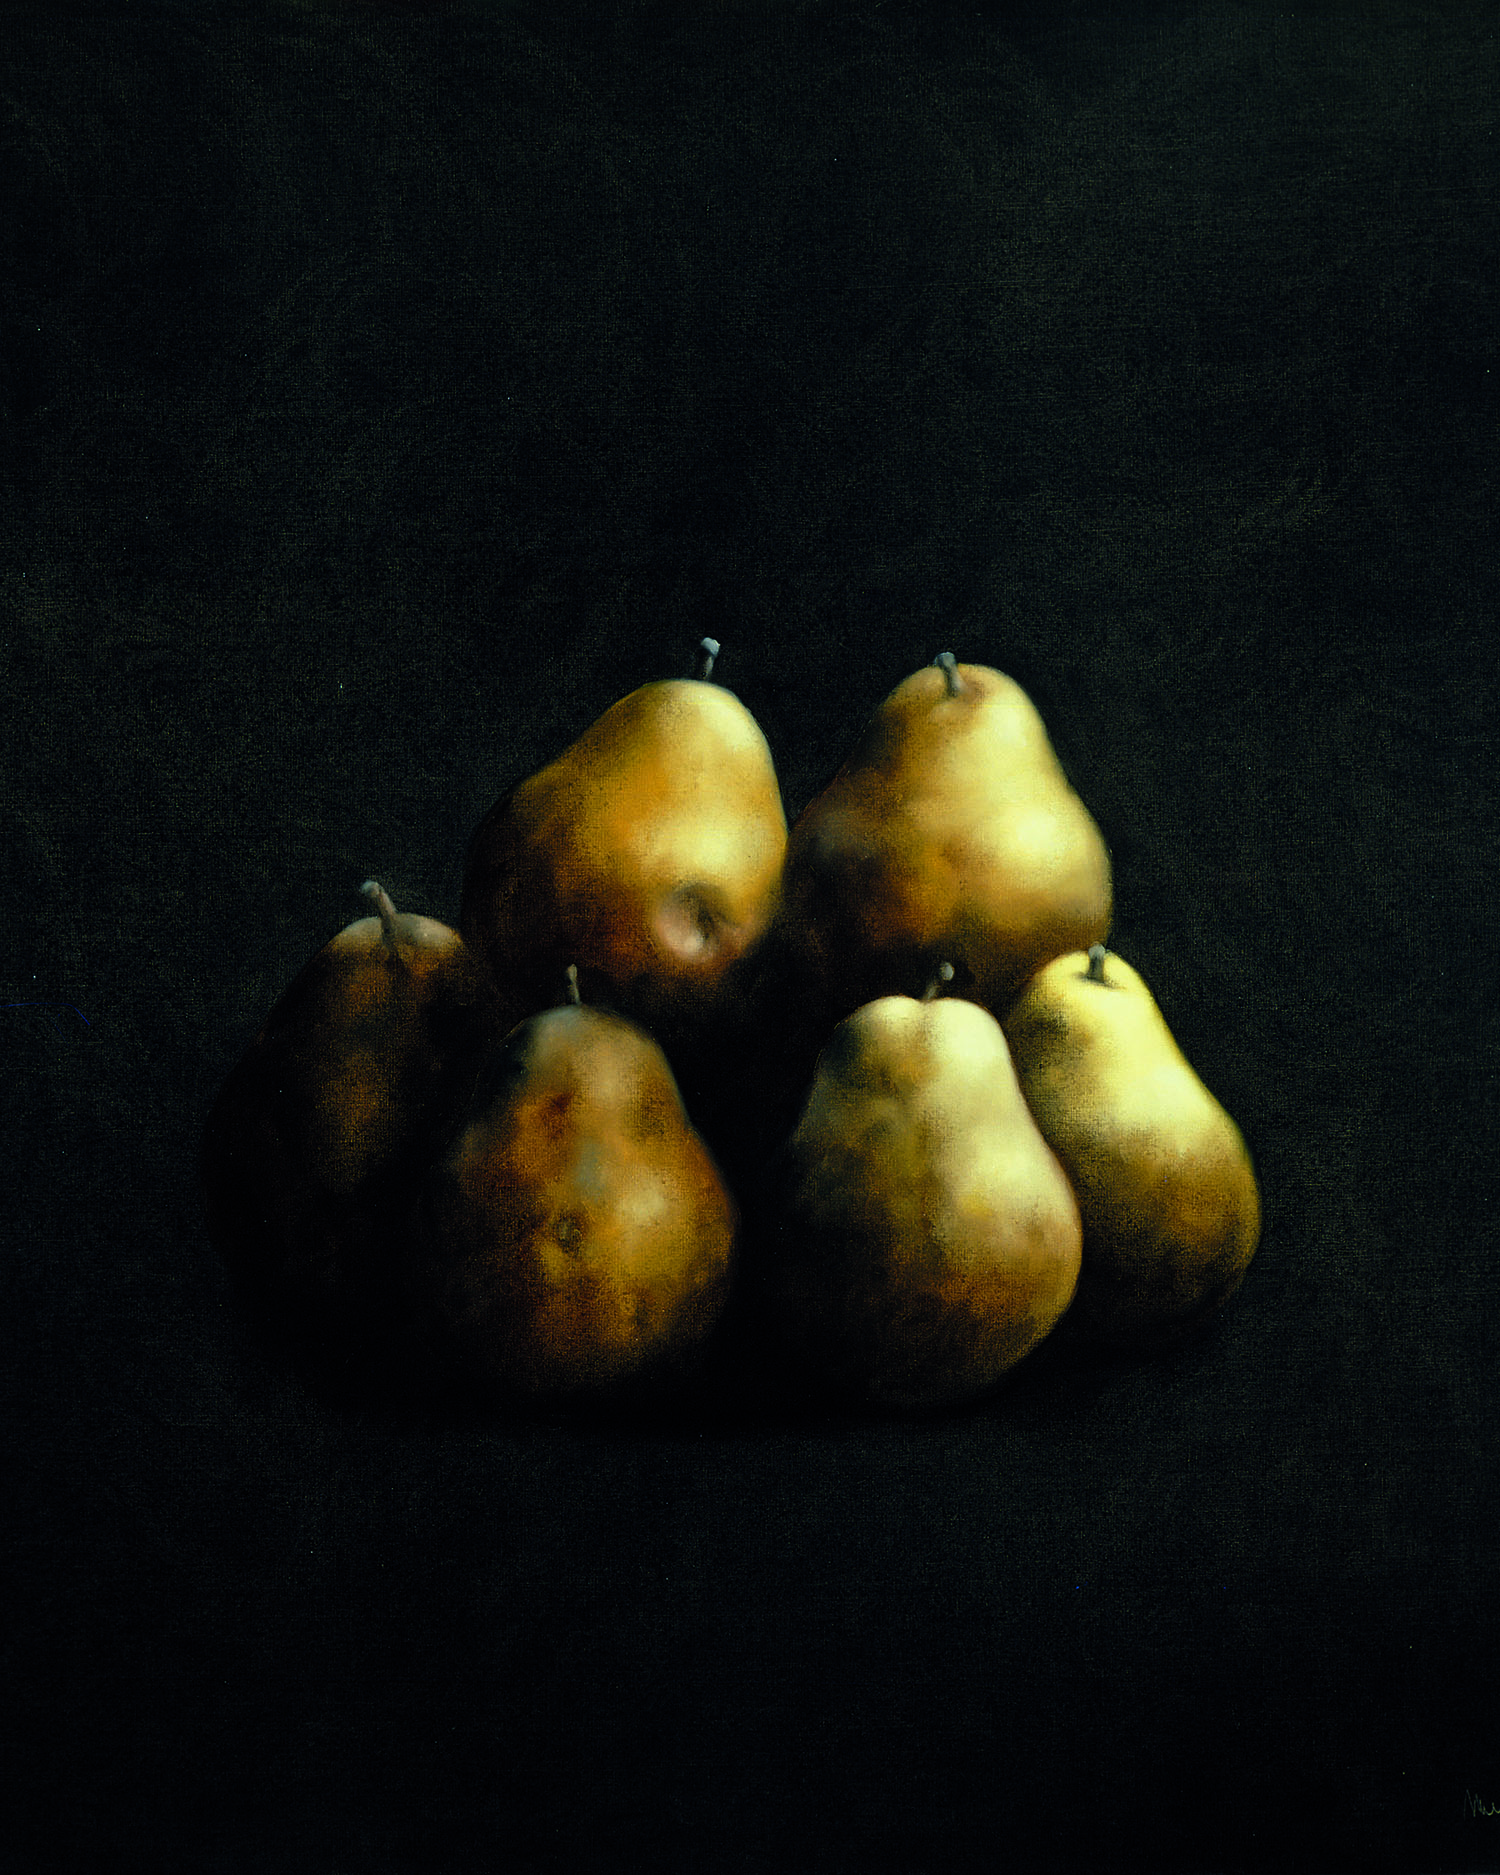 Pear. Josep Navarro Vives. 1984, oil on canvas, cm 100 x 100.